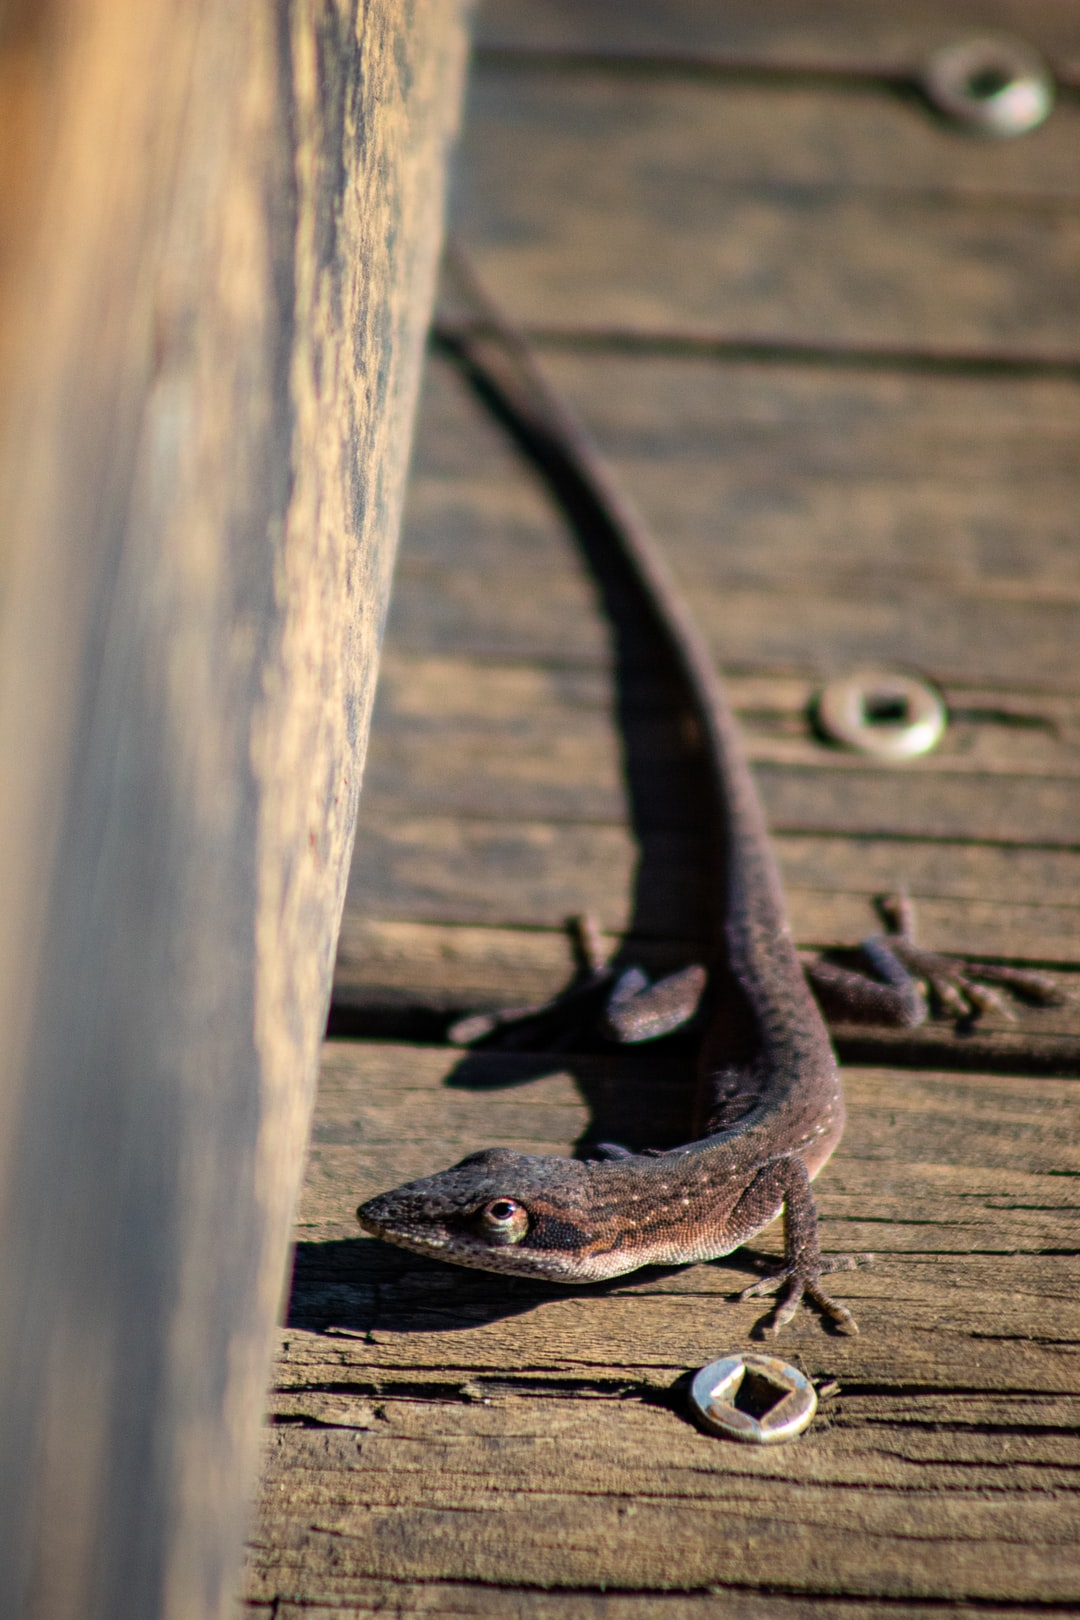 A lizard on the boardwalk at the Blue Elbow Swamp in Orange, TX.